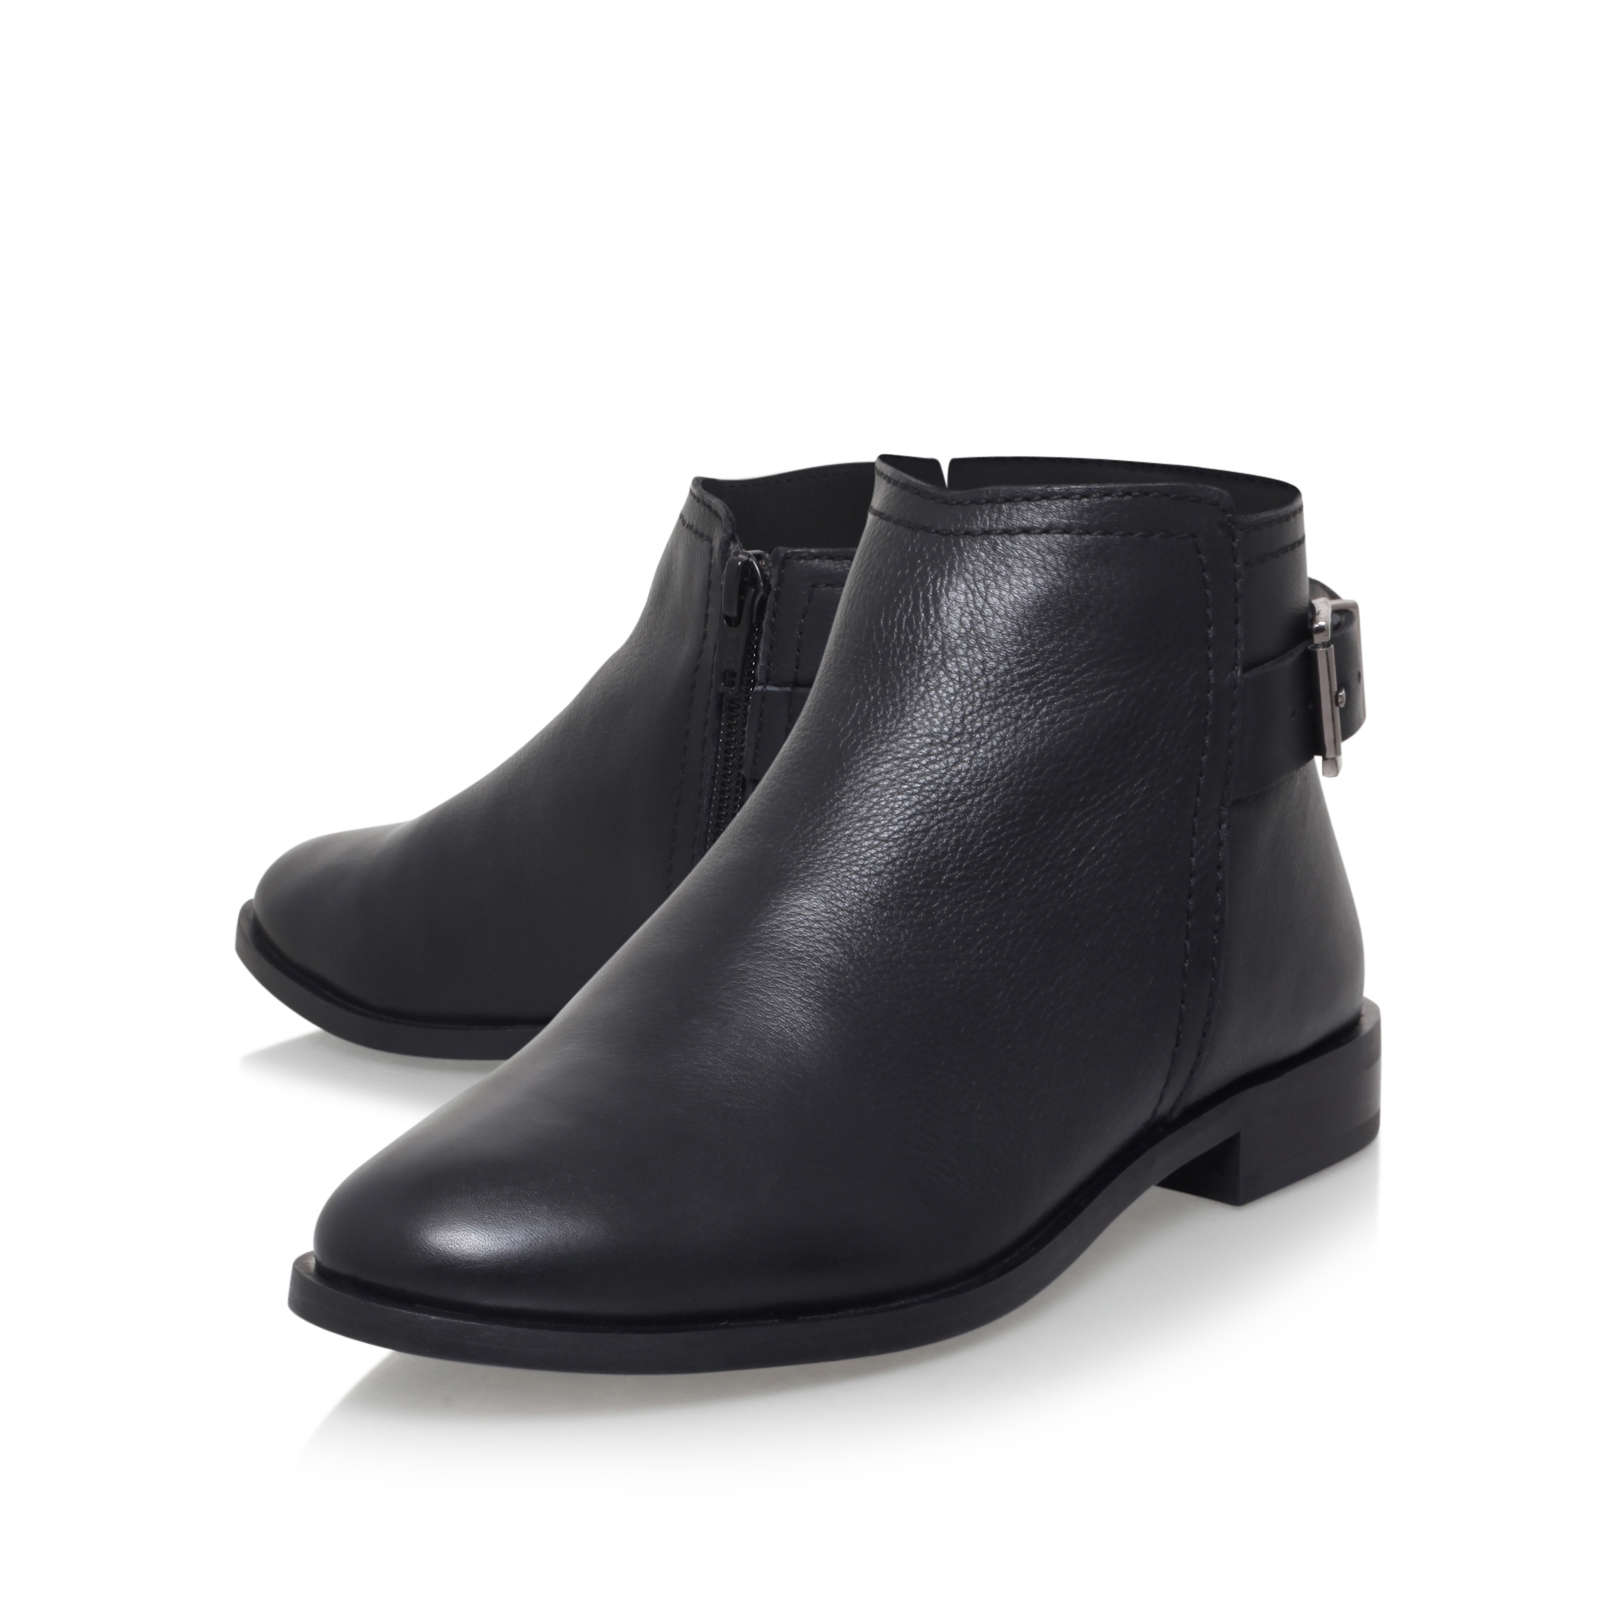 carvela kurt geiger potion flat ankle boots in black lyst